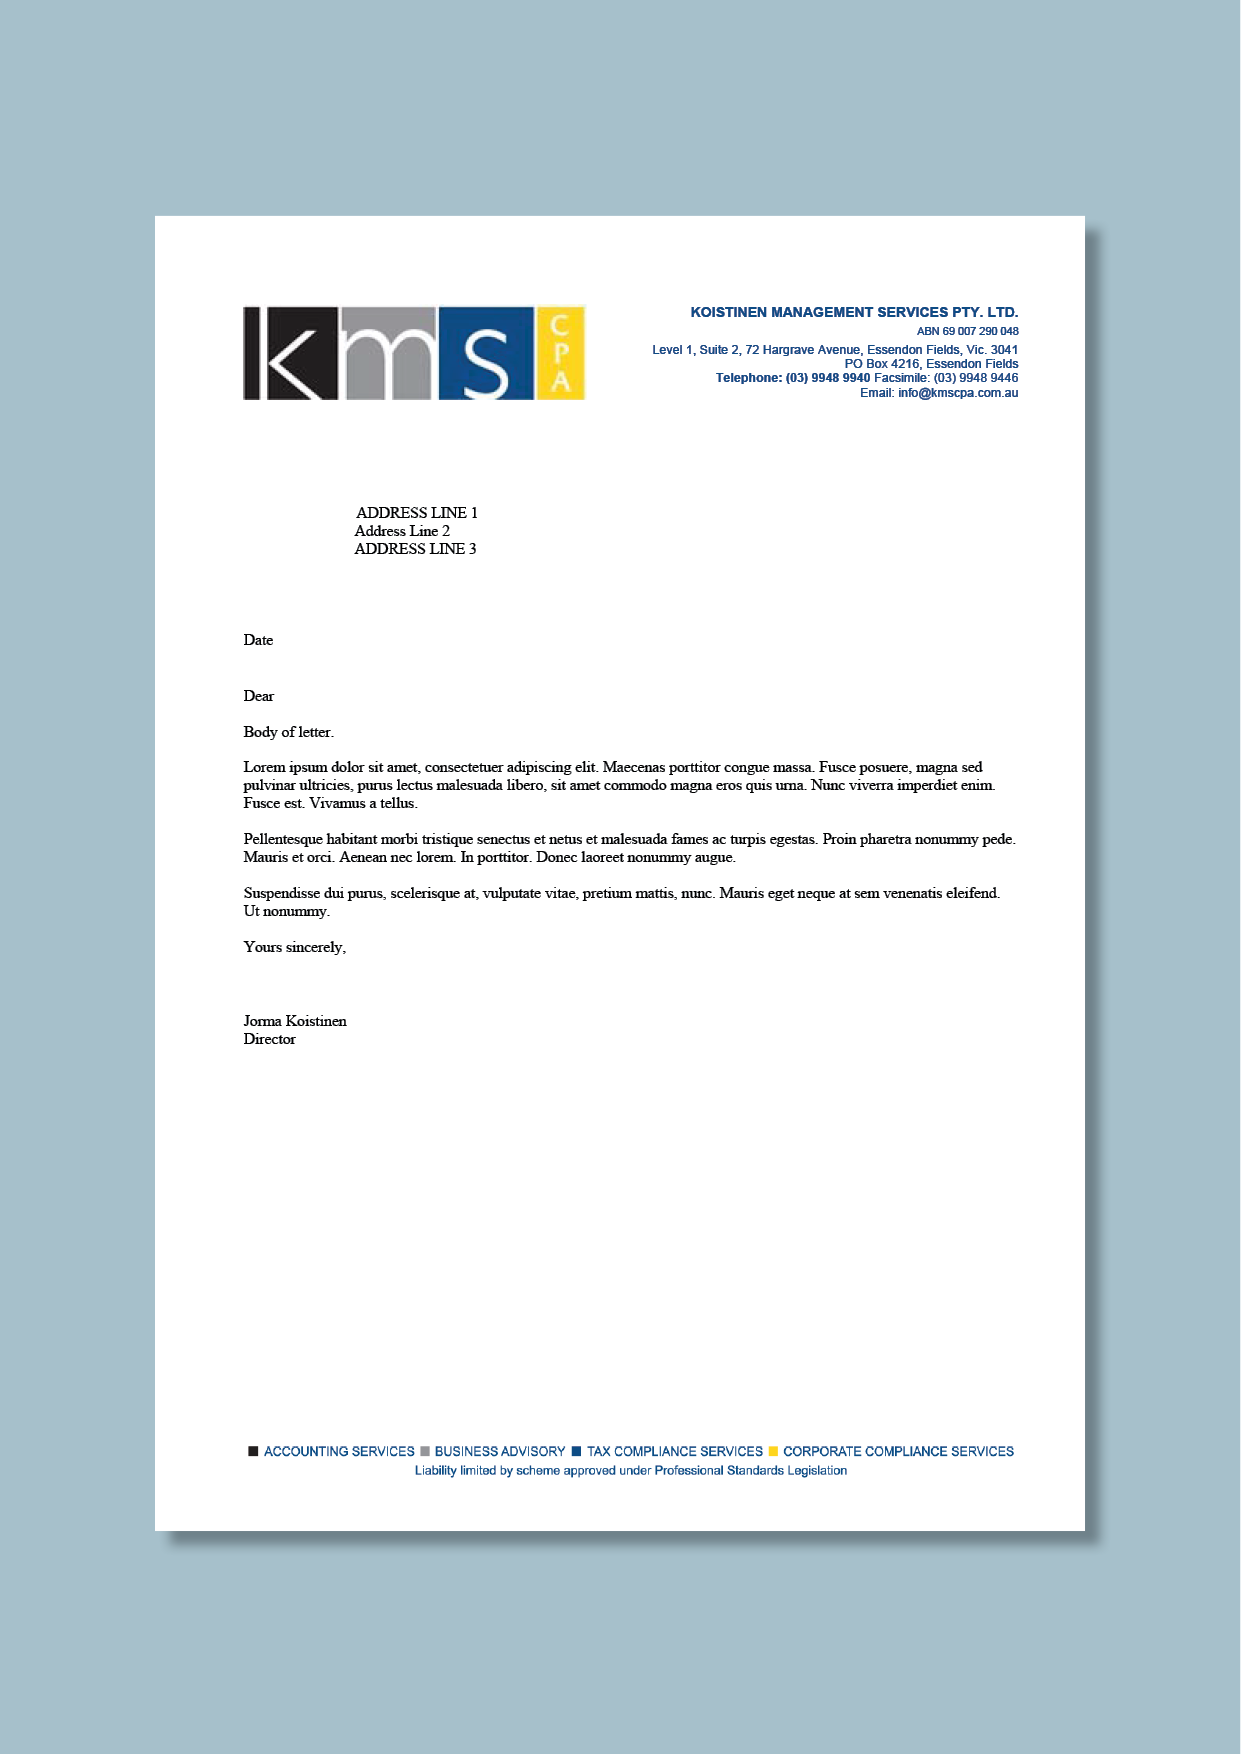 Accountancy and management consultancy letterhead